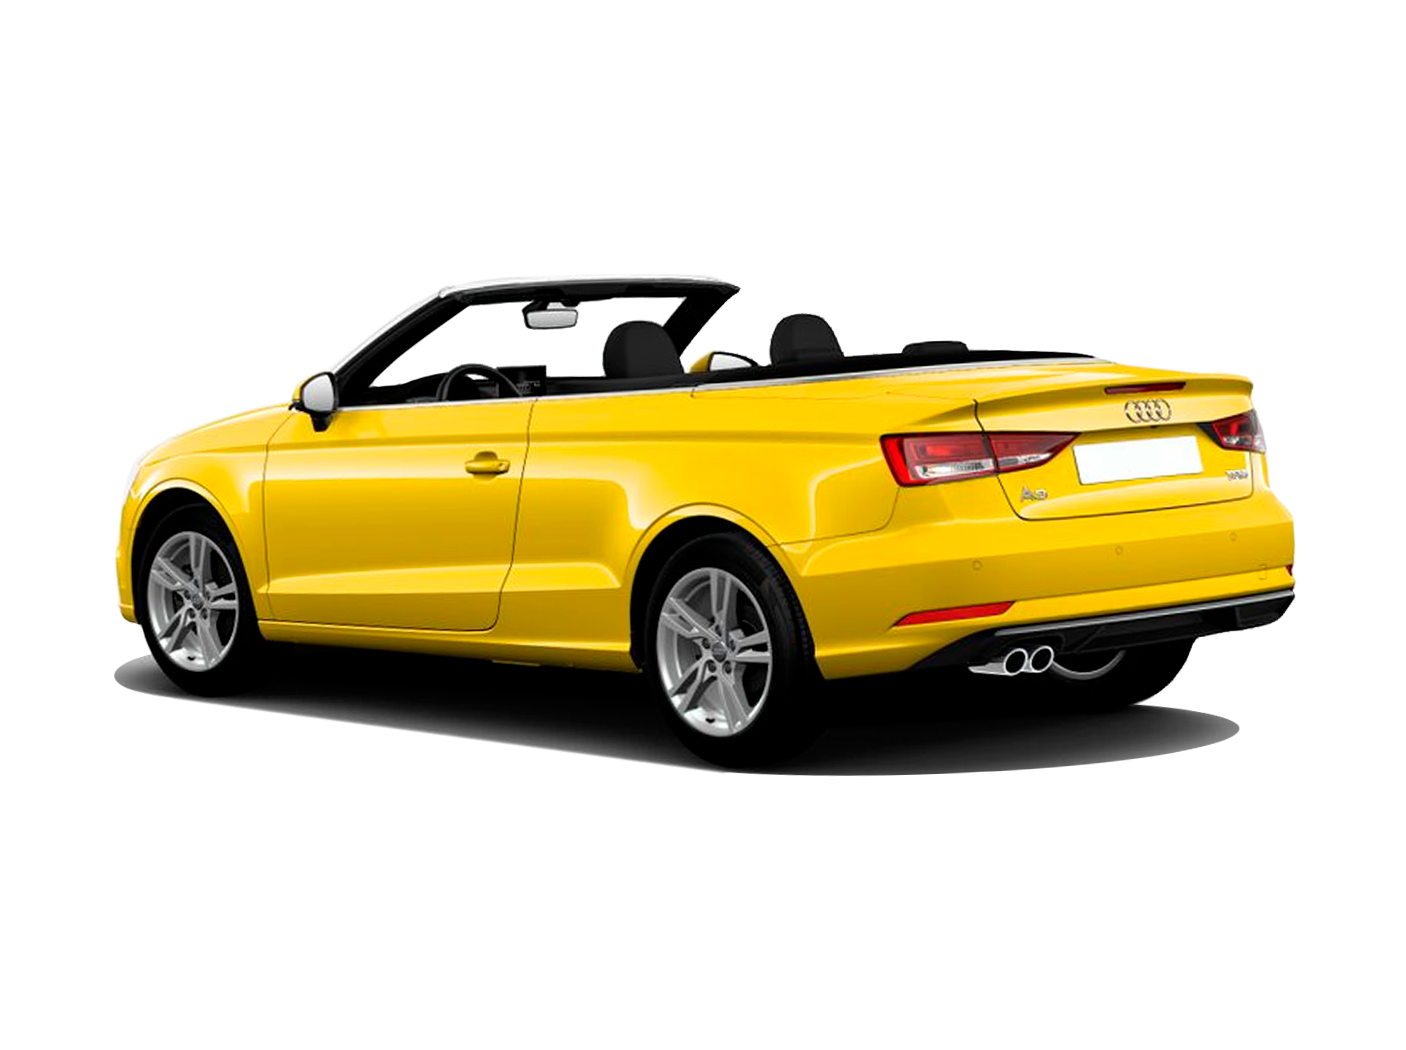 2.0 TFSI GASOLINA CABRIOLET PERFORMANCE S-TRONIC